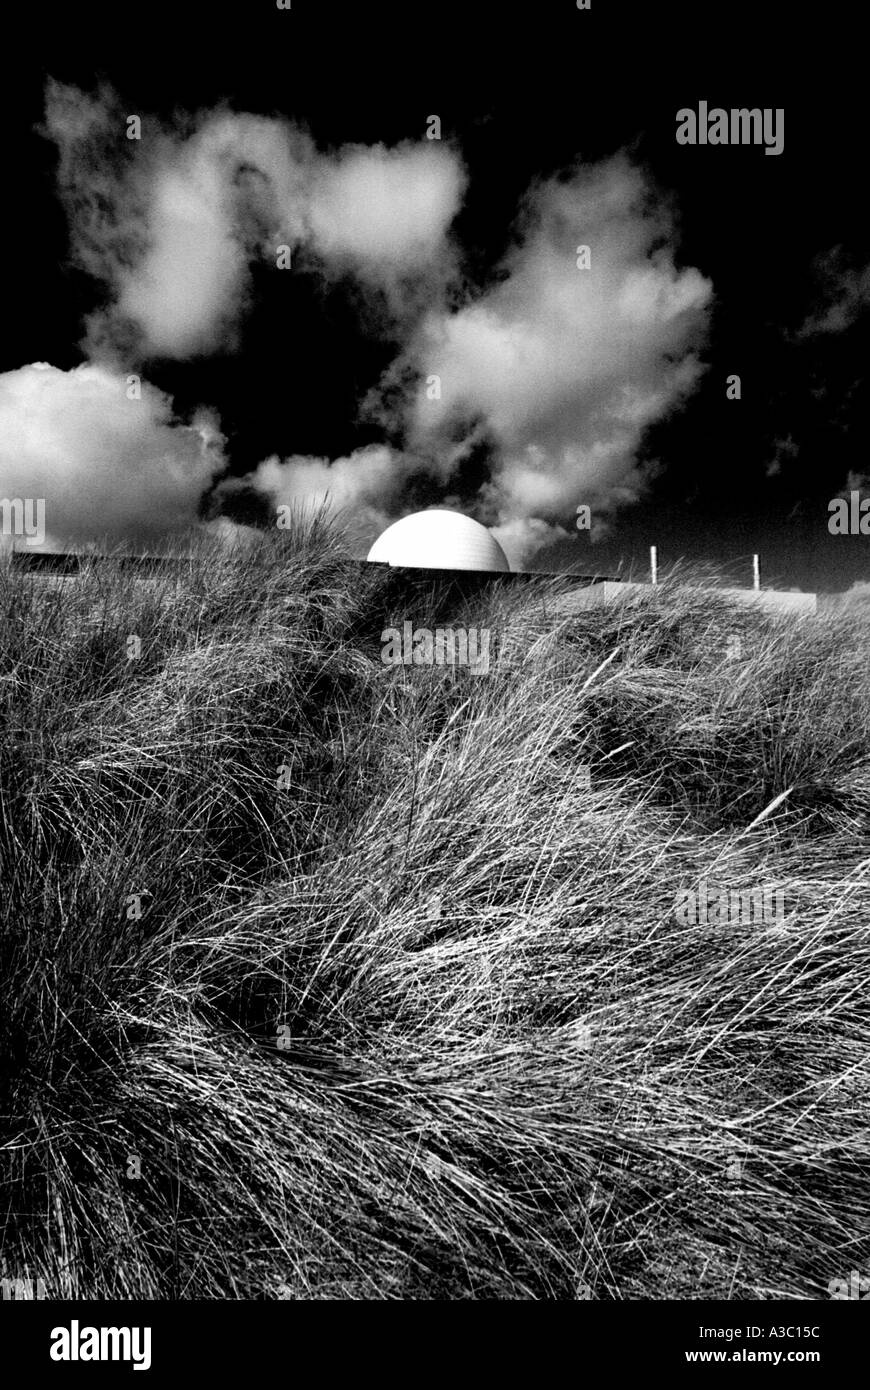 Sizewell B PWR Nuclear Power station on the coast of Suffolk, East Anglia, England. - Stock Image